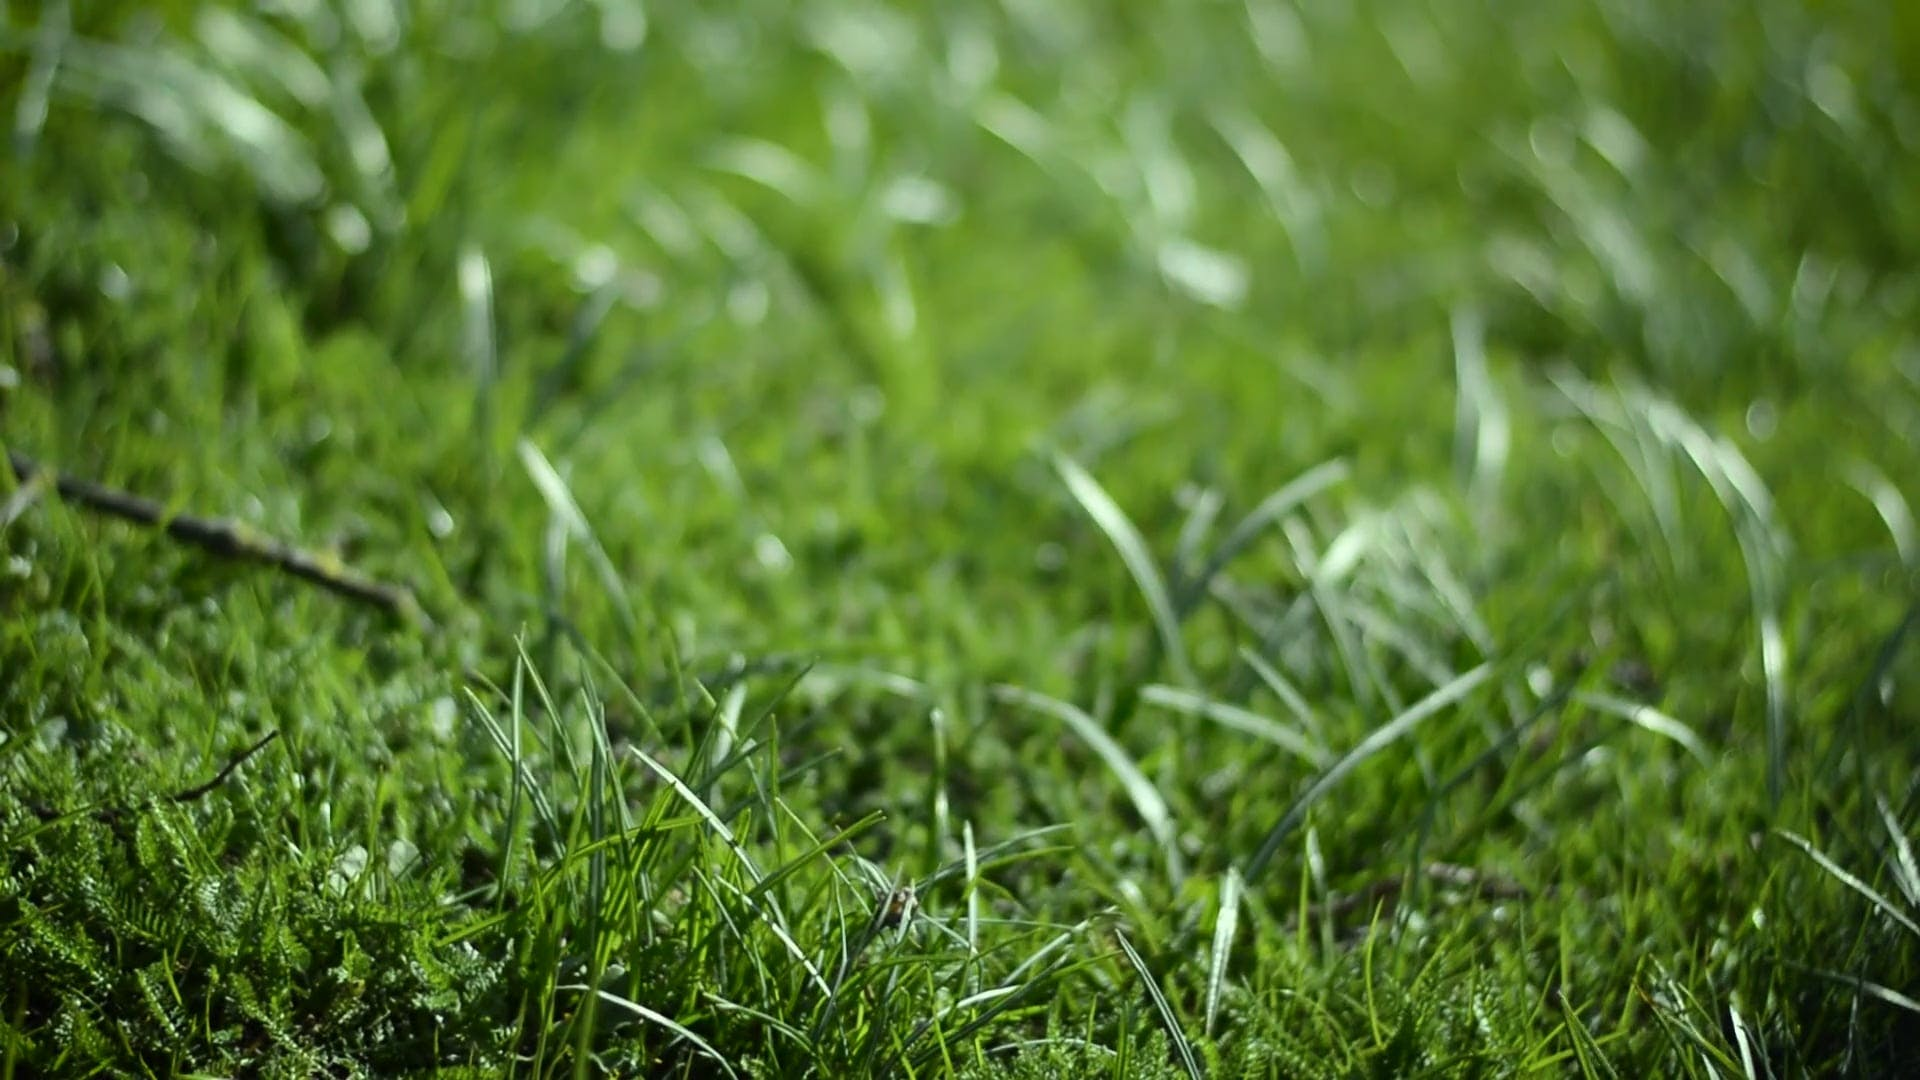 ground plants grass close-up depth of field green nature